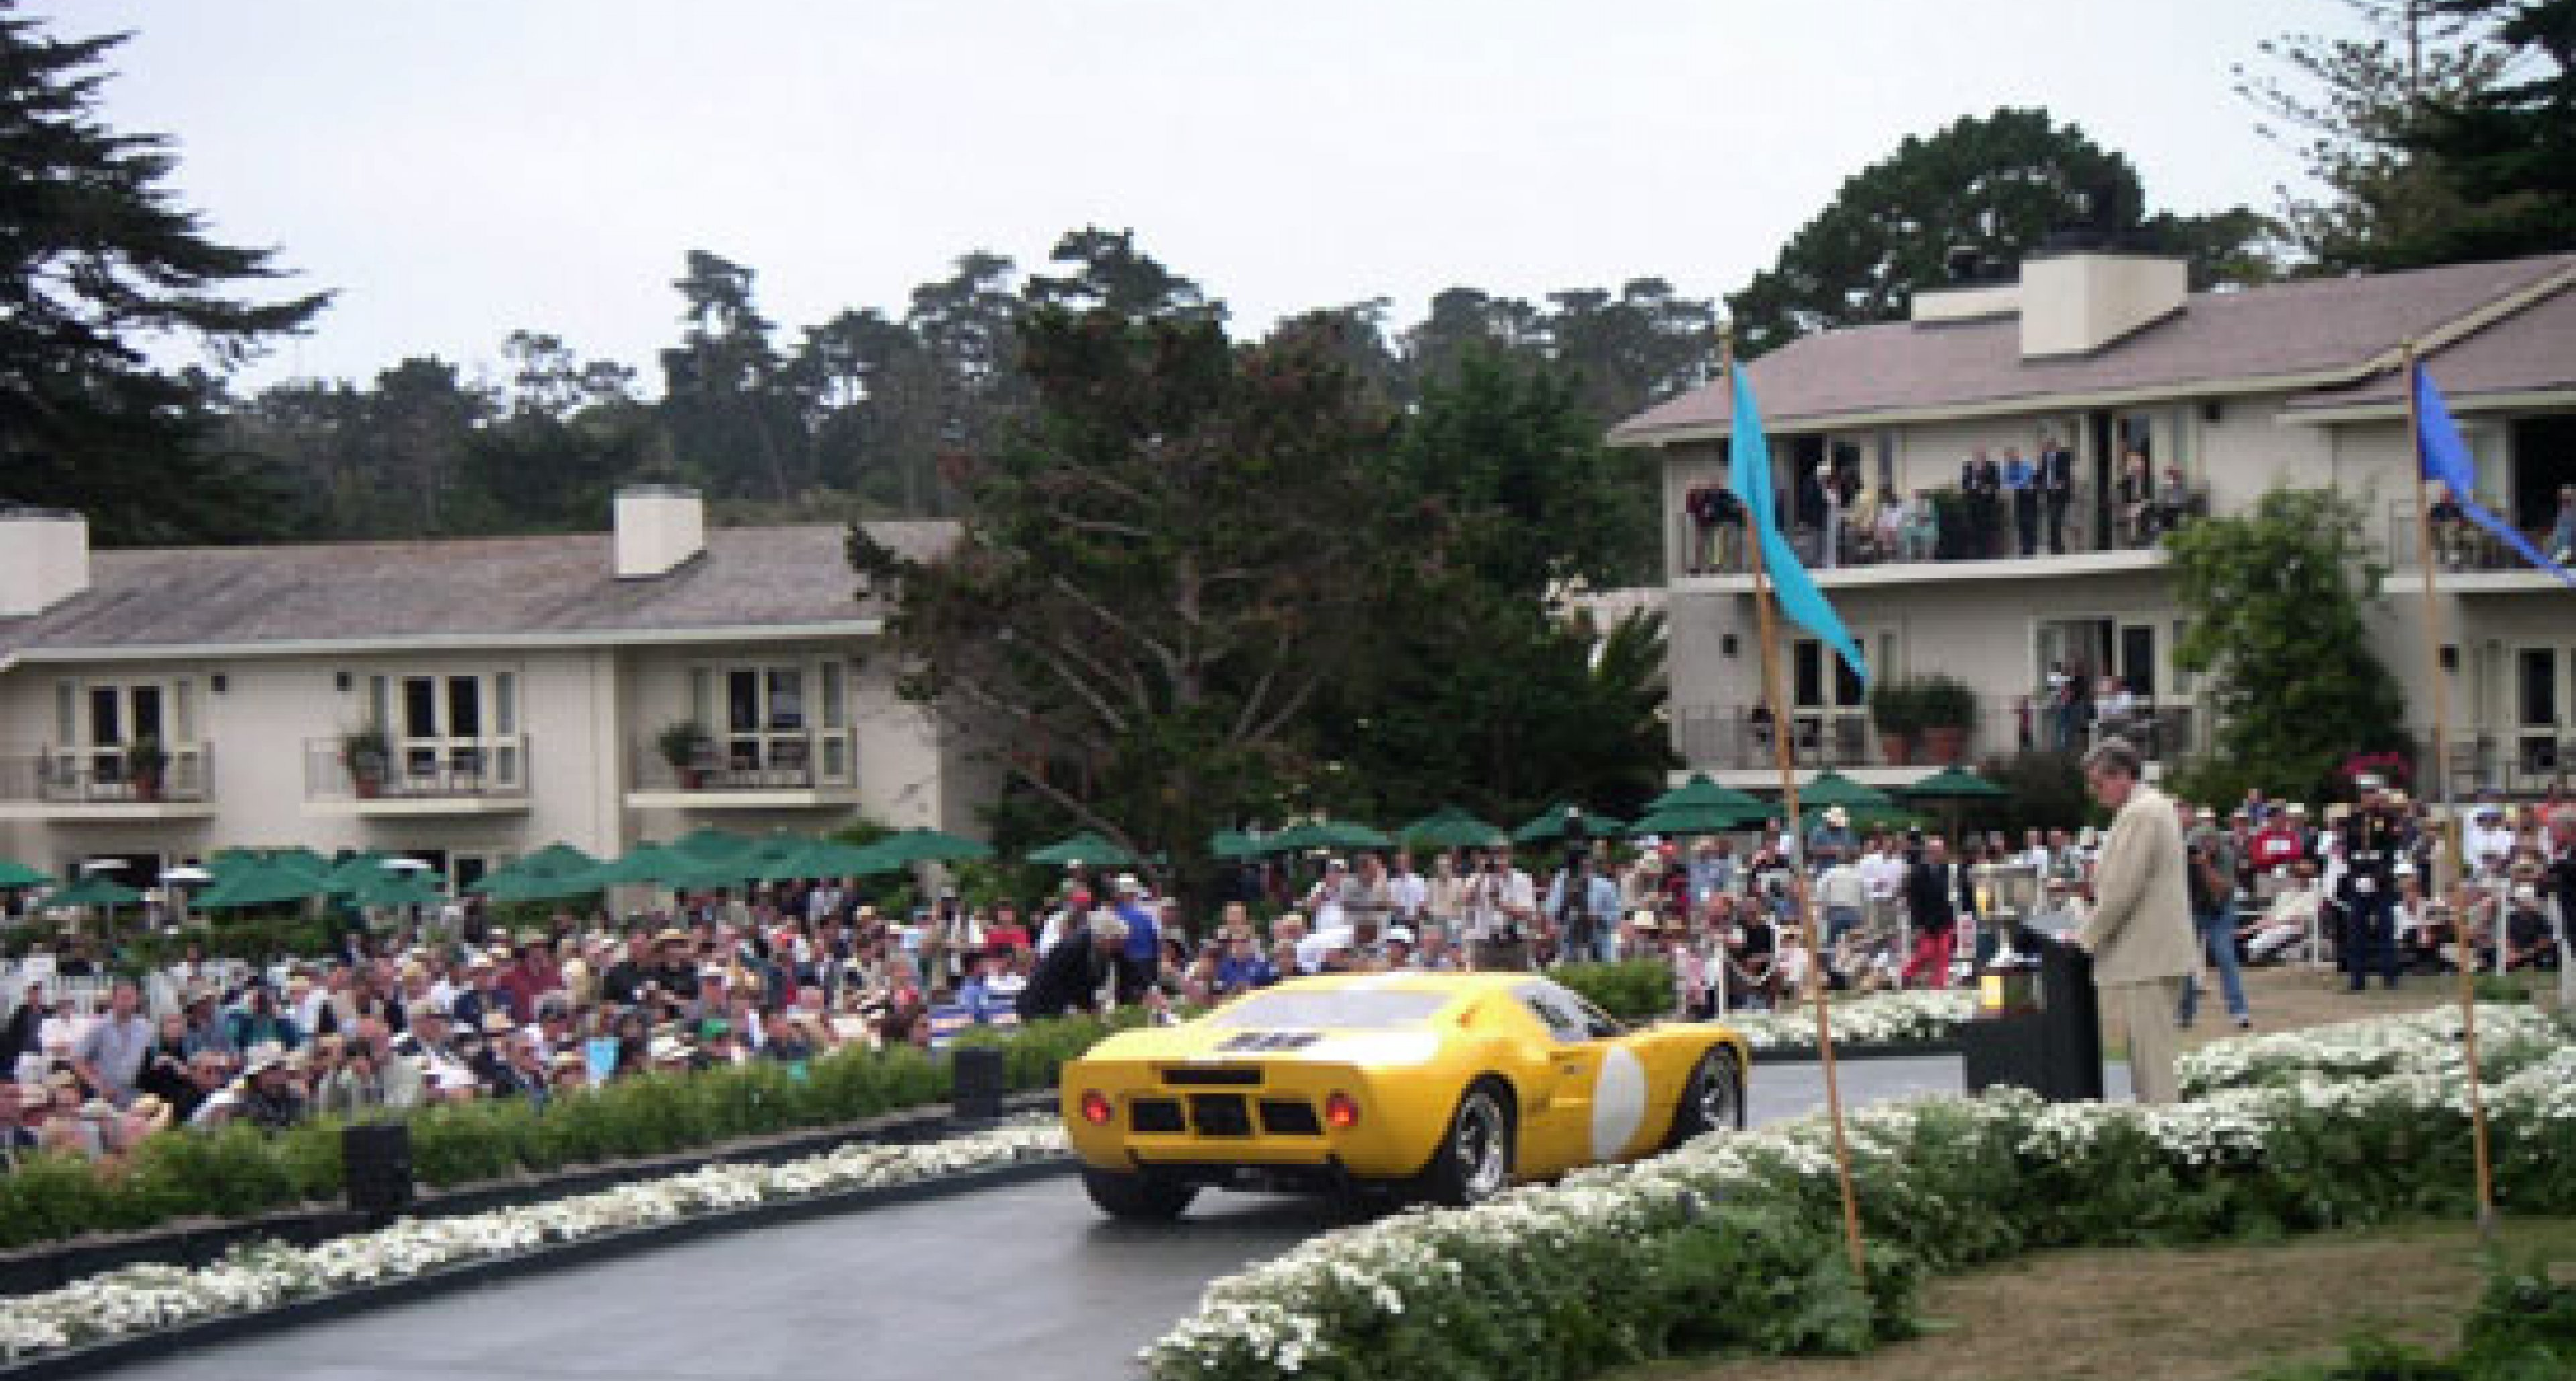 Pebble Beach 2003 - the entrant's perspective